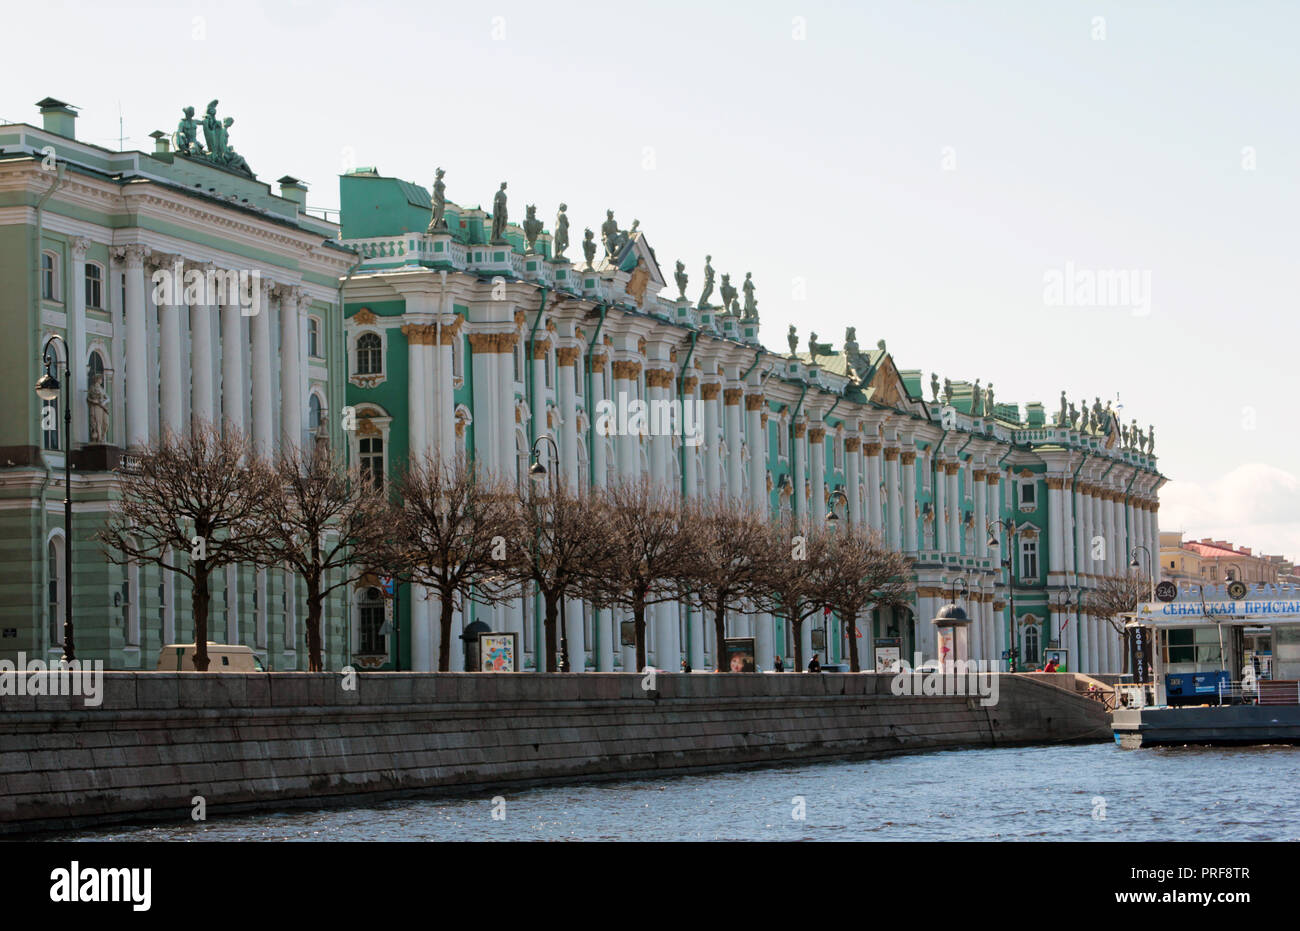 An oblique view of the colourful façade of Hermitage museum, from the River Neva in St Petersburg, Russia. - Stock Image